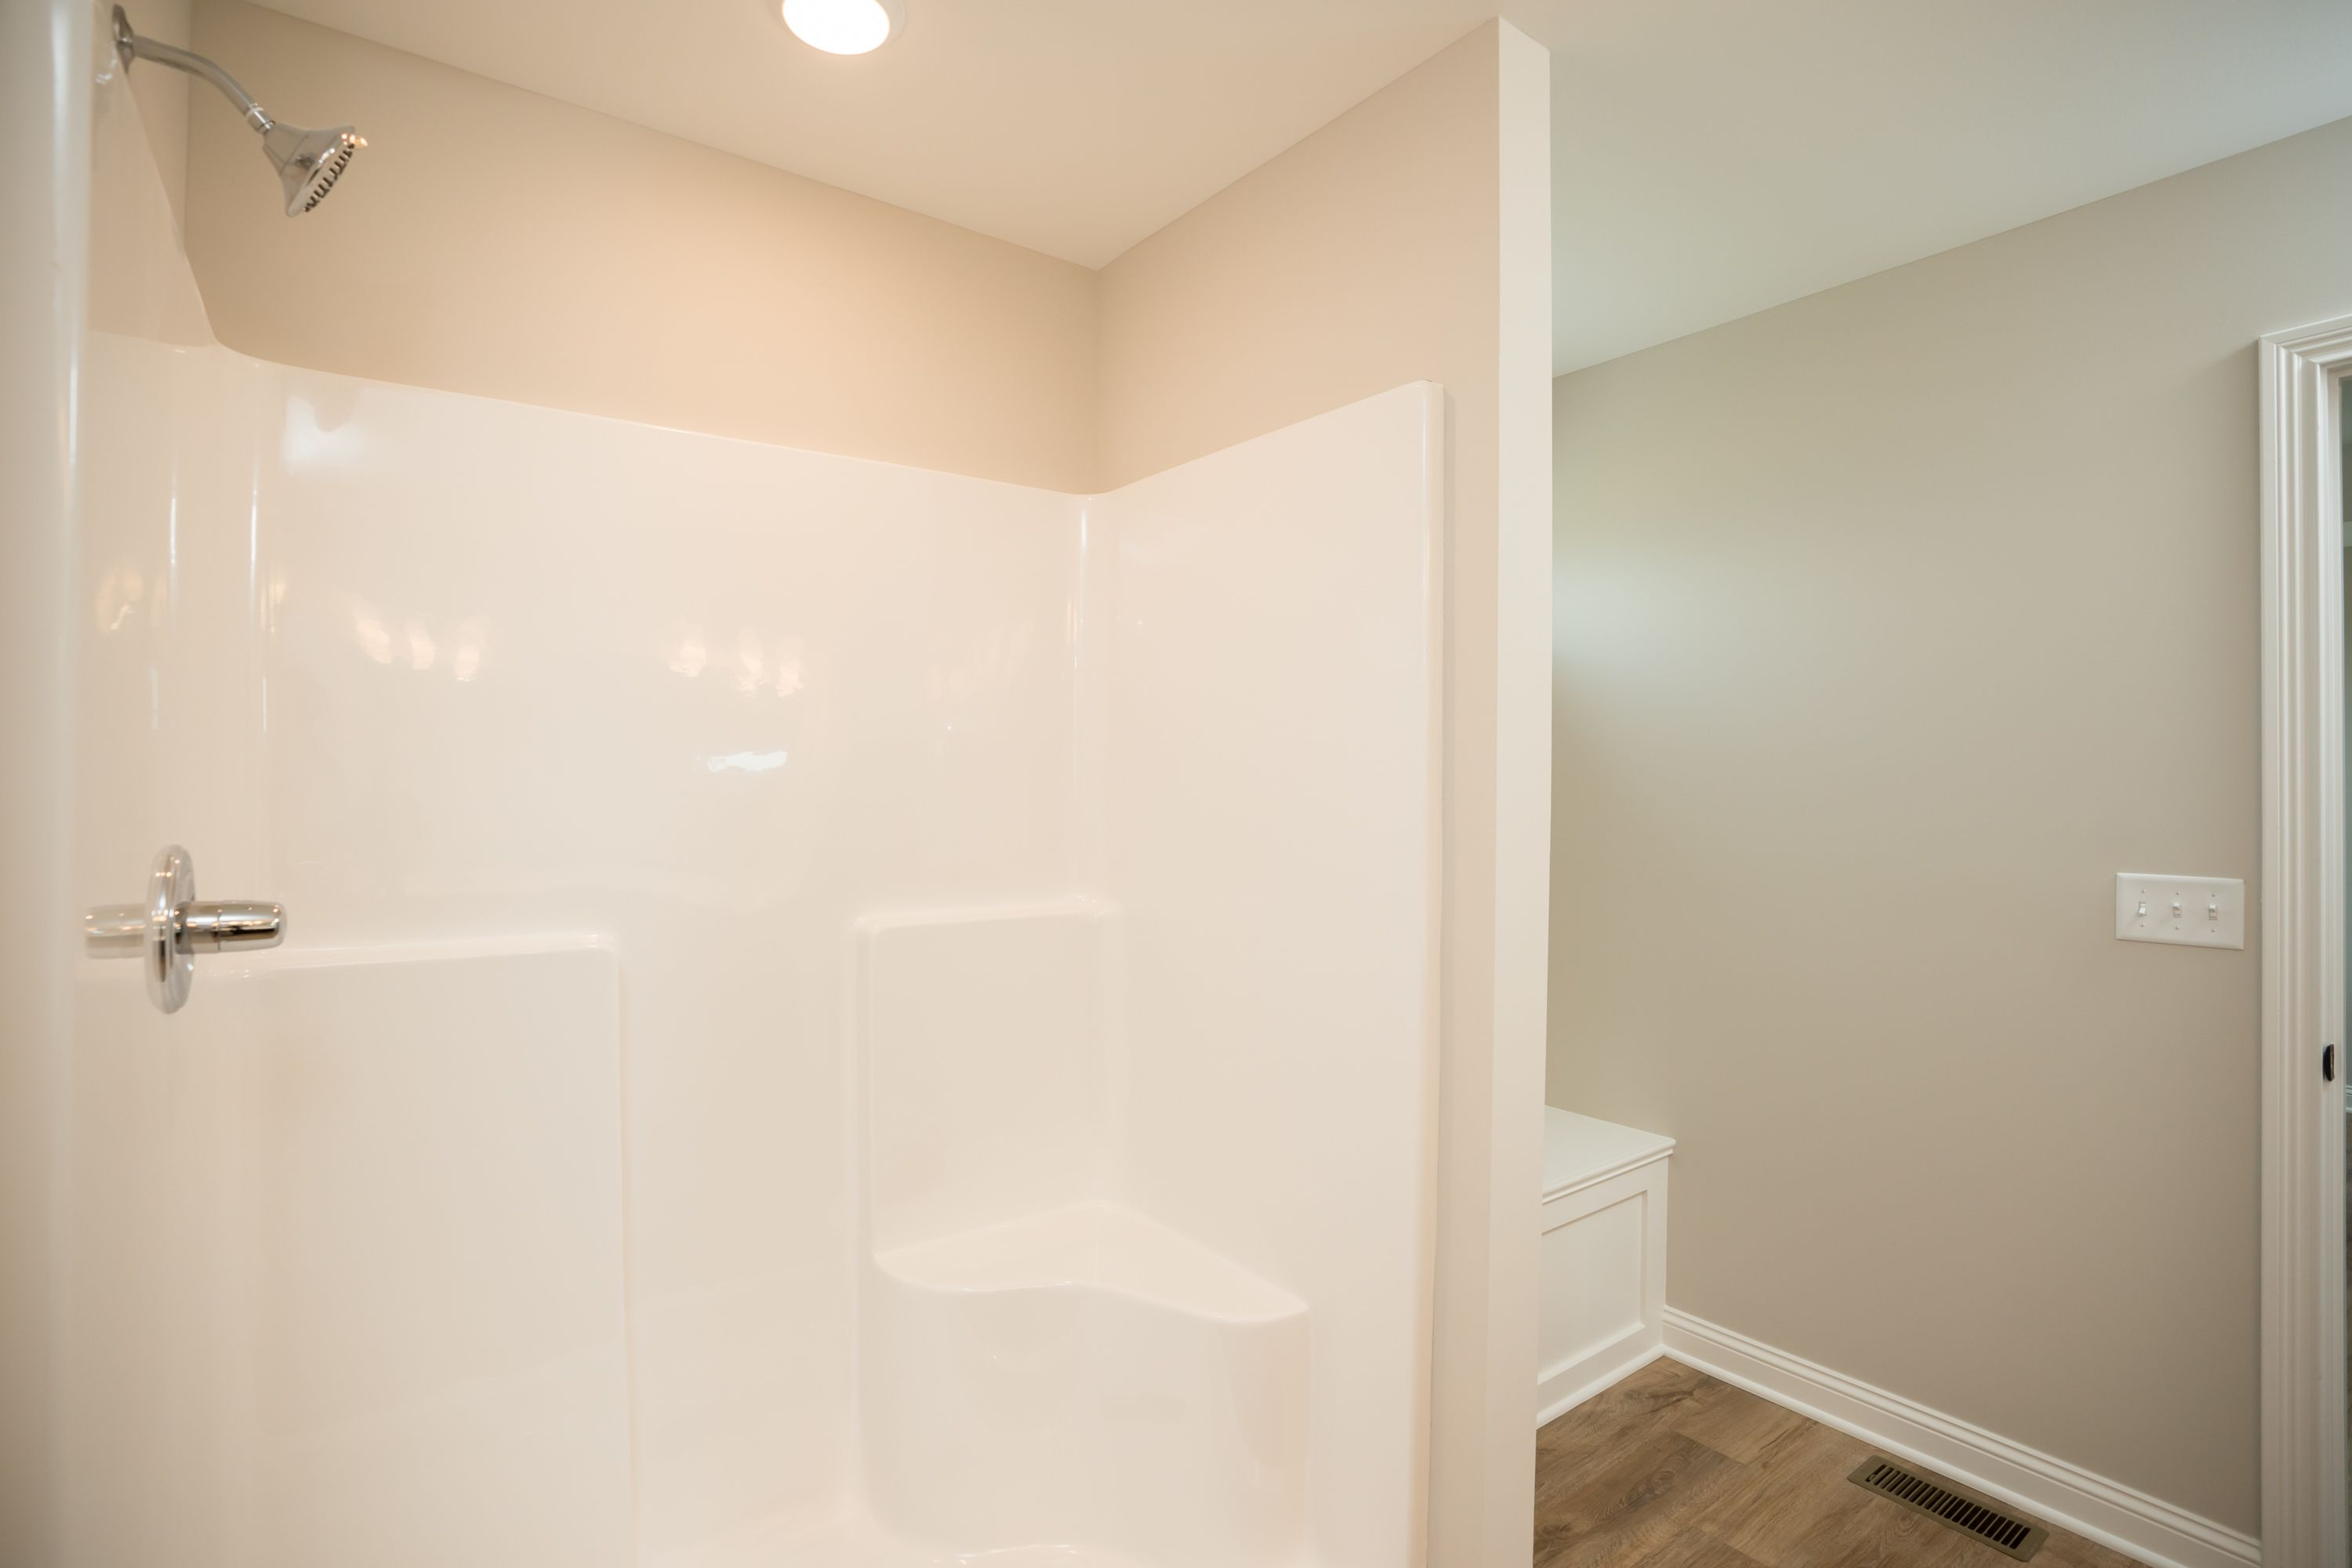 Bathroom featured in The Nancy By James Monroe Homes in Lexington, KY